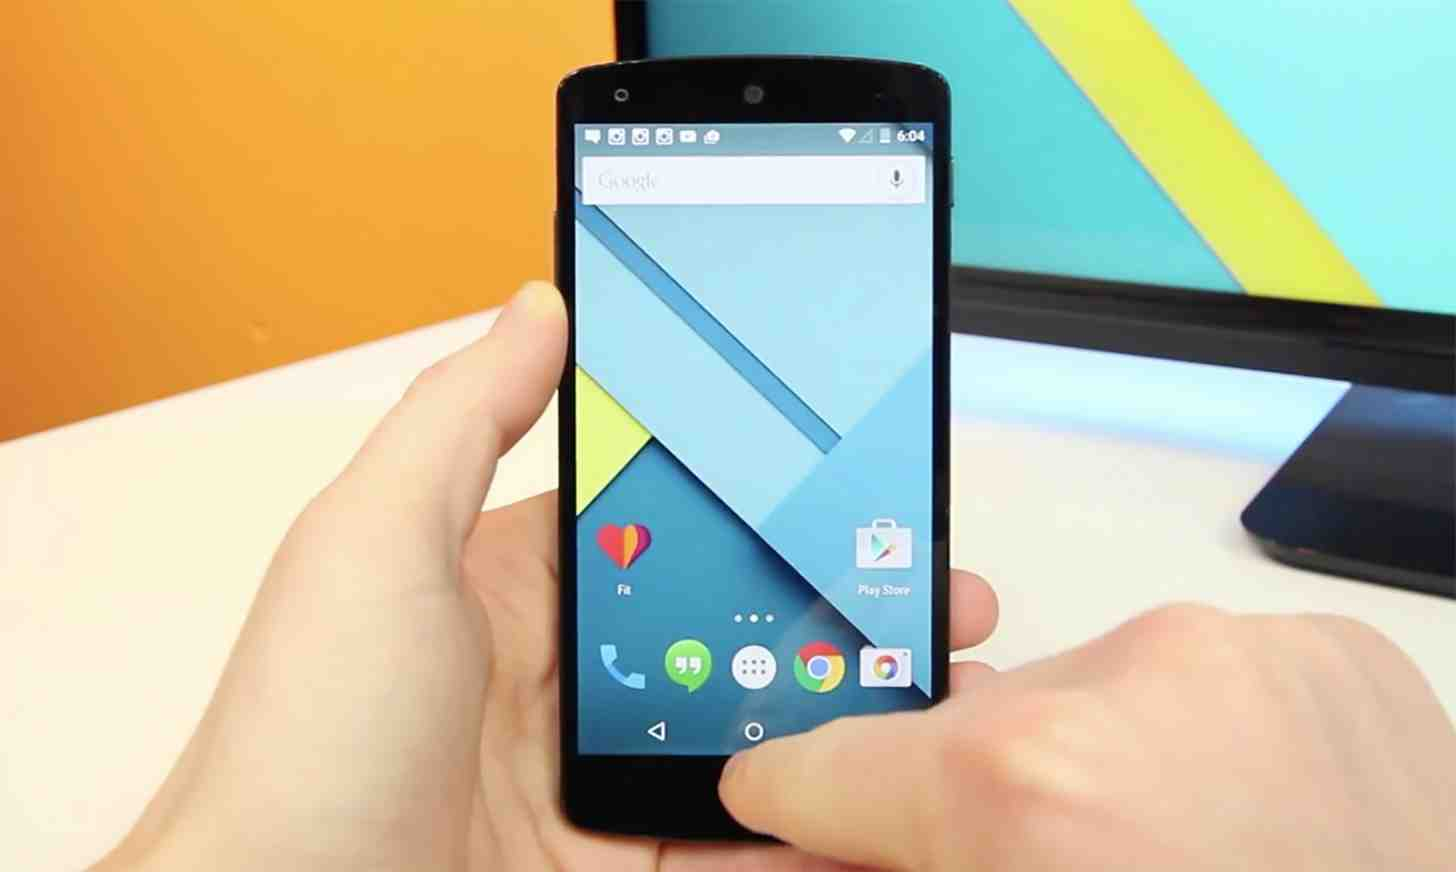 The new update to Android 5.1.1 Lollipop for the Nexus 5 ...